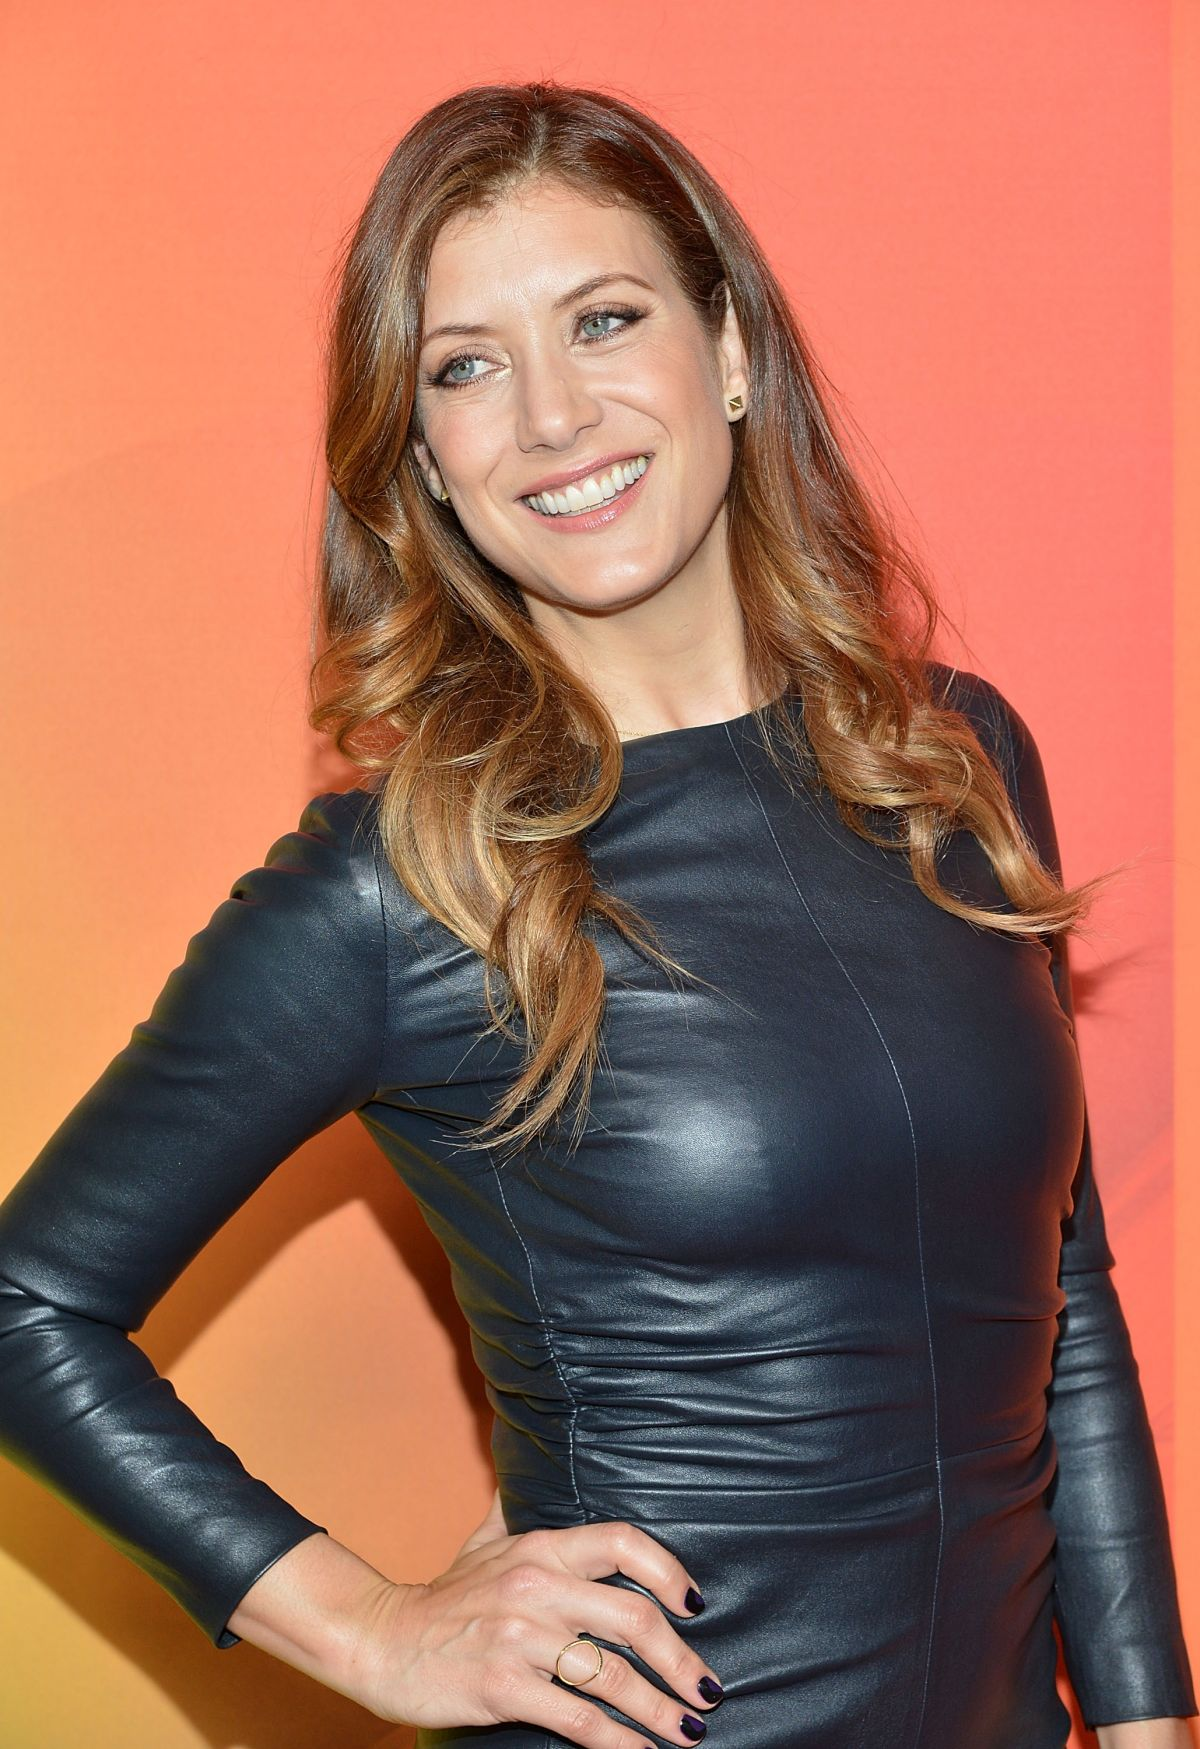 Señoras estupendas. Madurez sexy - Página 10 Kate-walsh-at-nbc-upfront-presentation-in-new-york_1